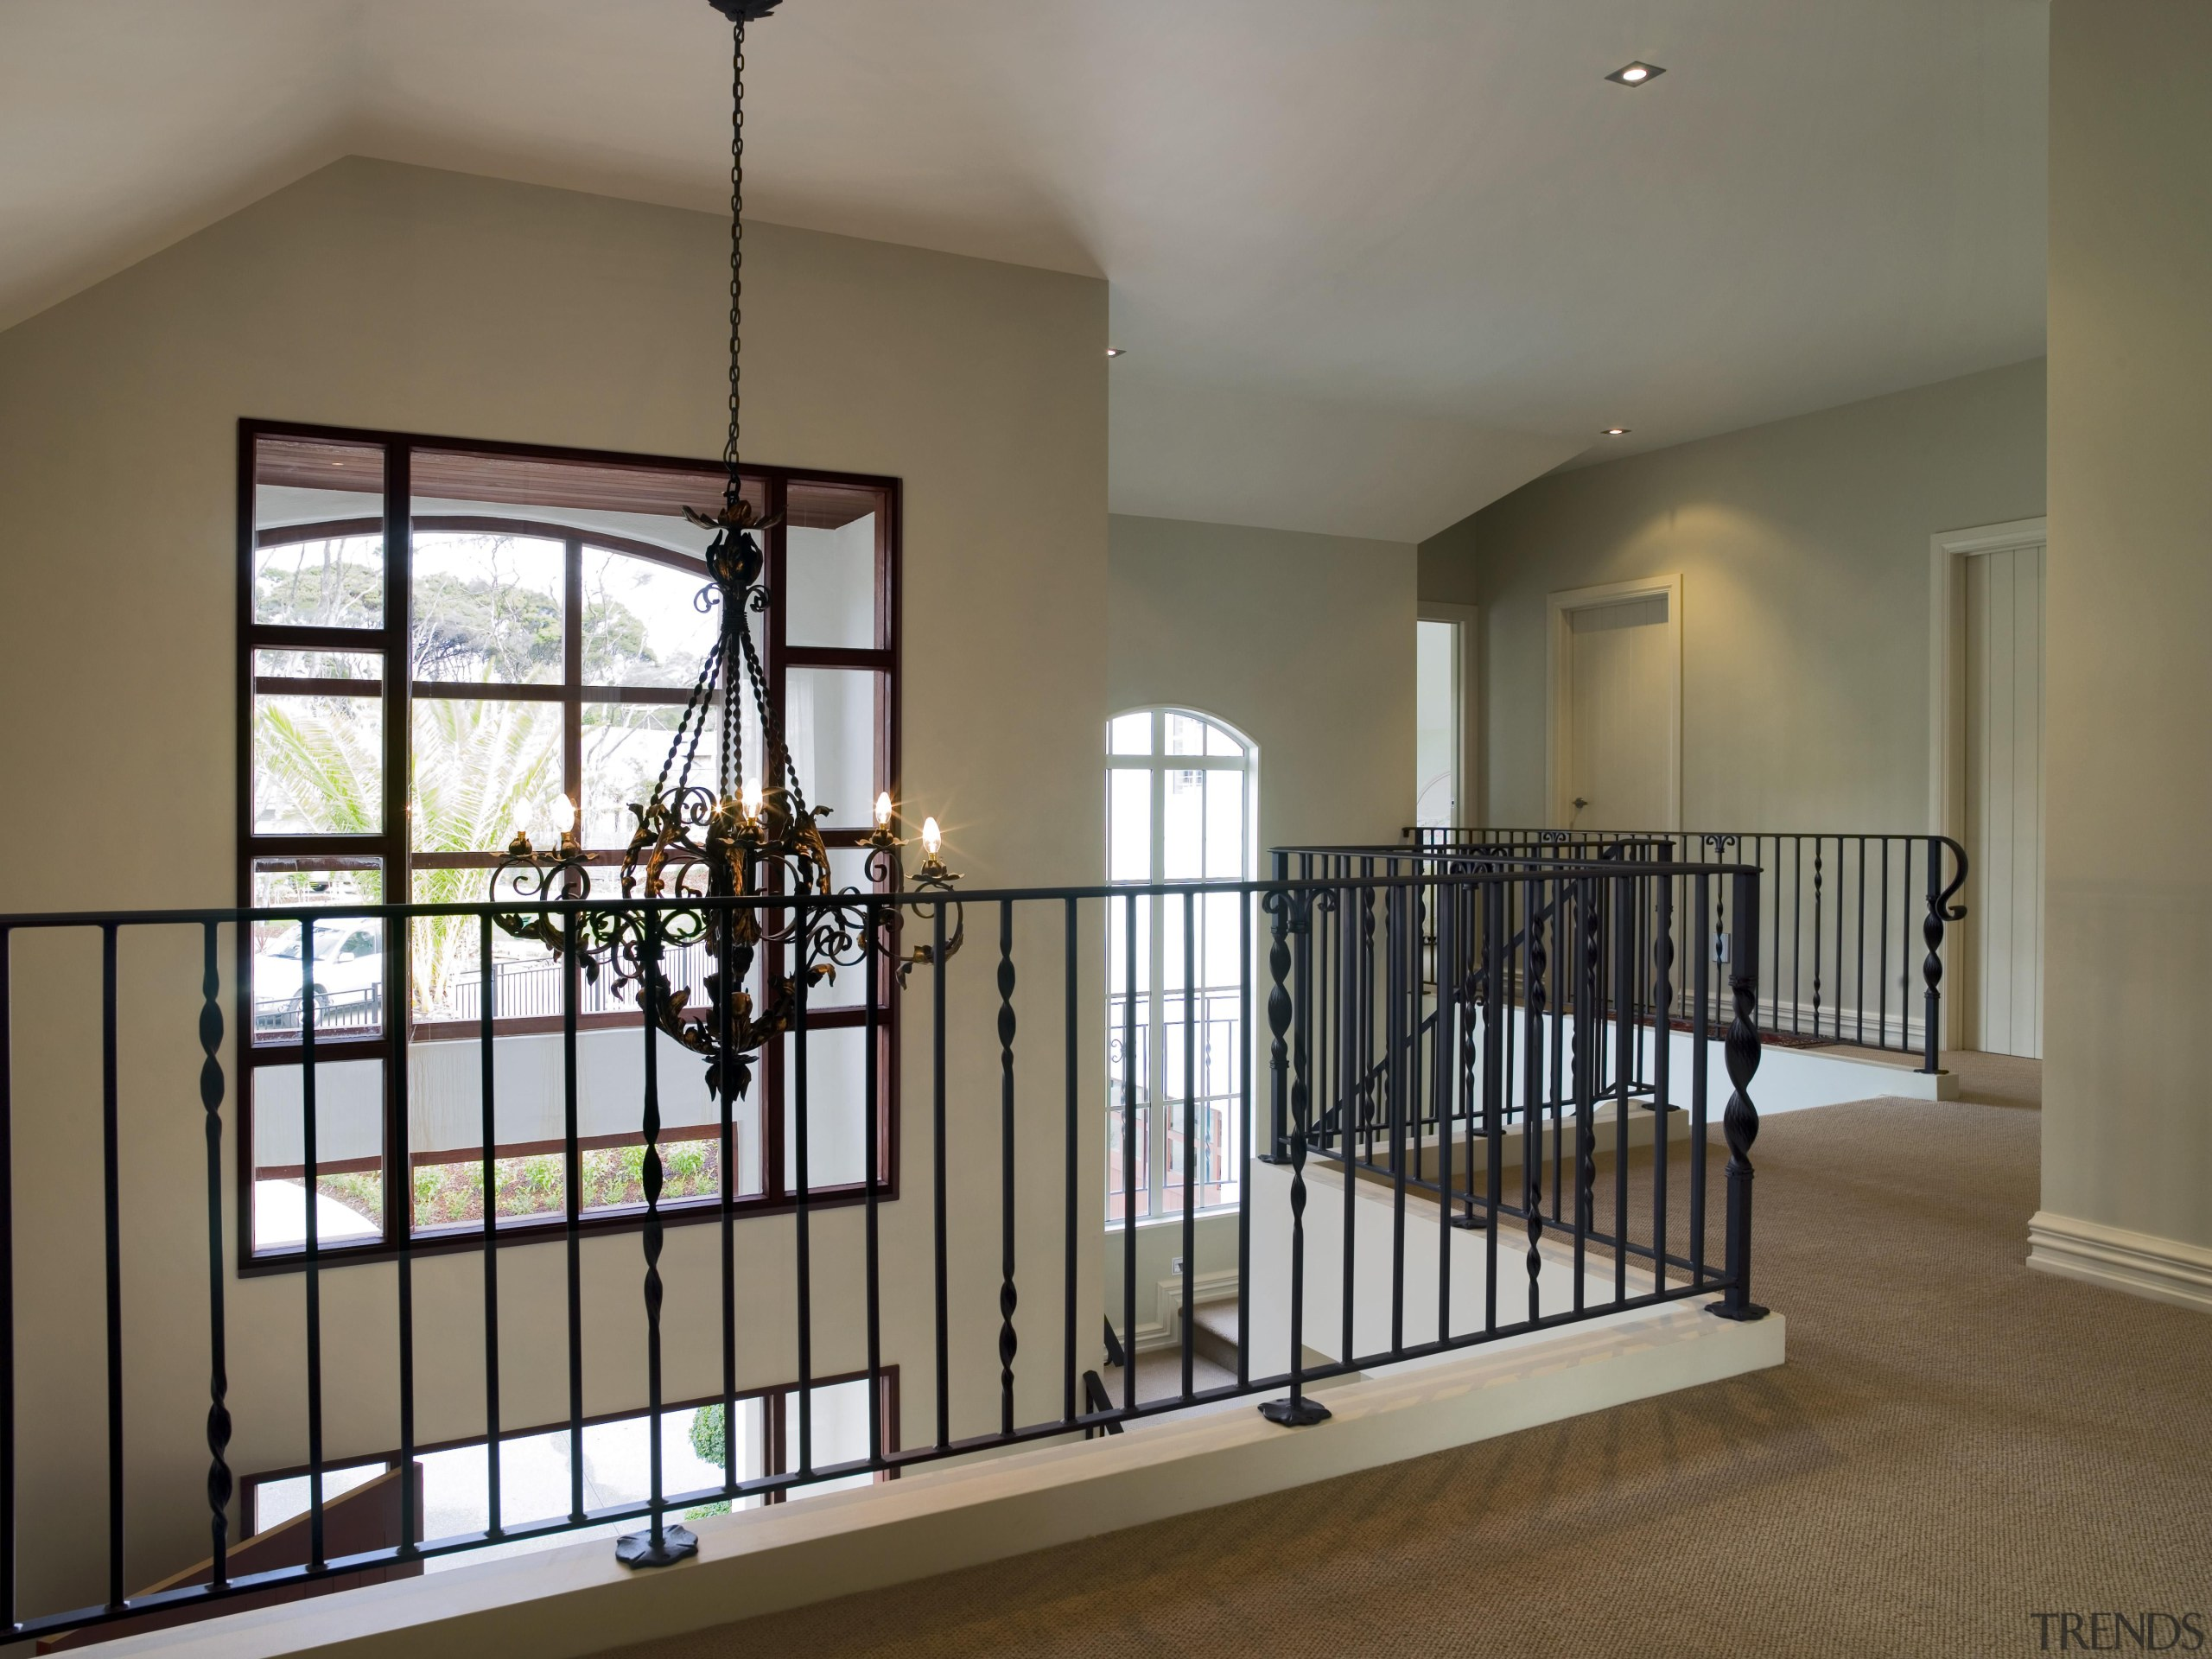 209thomas hunter 7 - Thomas_hunter_7 - baluster | baluster, door, estate, floor, handrail, home, interior design, iron, property, real estate, stairs, window, brown, gray